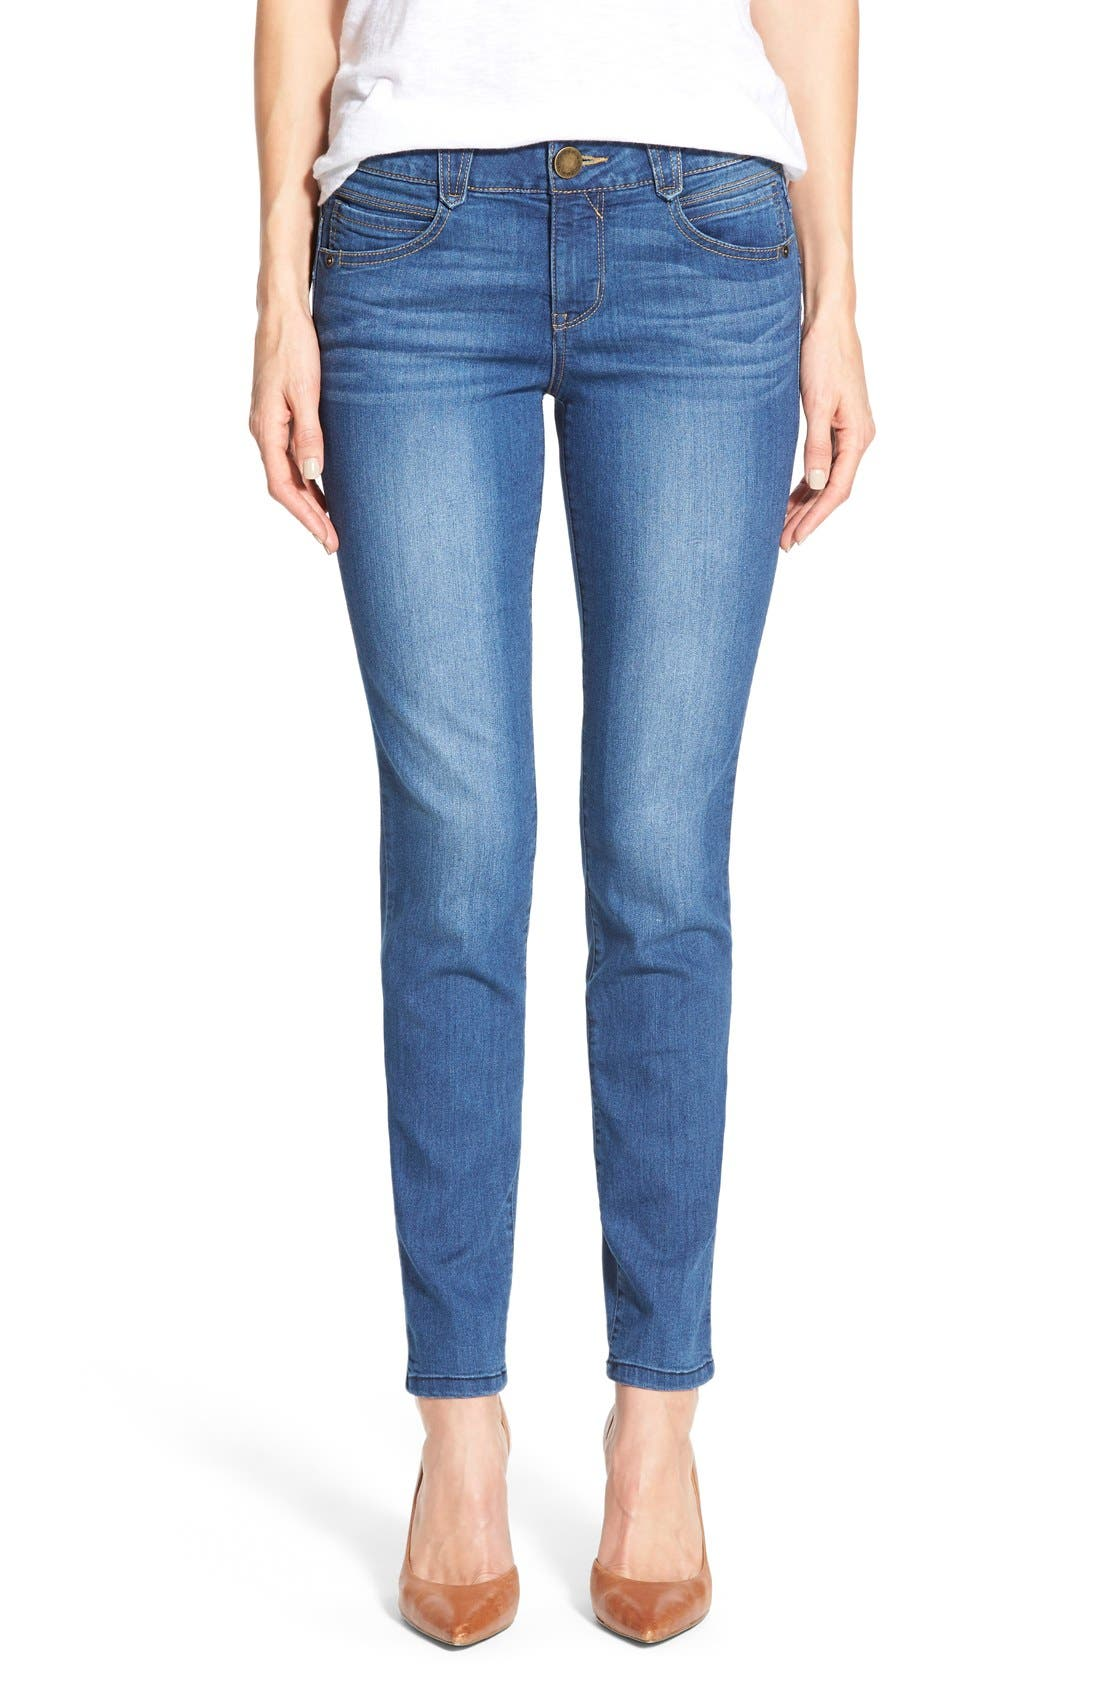 Alternate Image 1 Selected - Wit & Wisdom 'Ab-solution' Booty Lift Stretch Skinny Jeans (Nordstrom Exclusive)